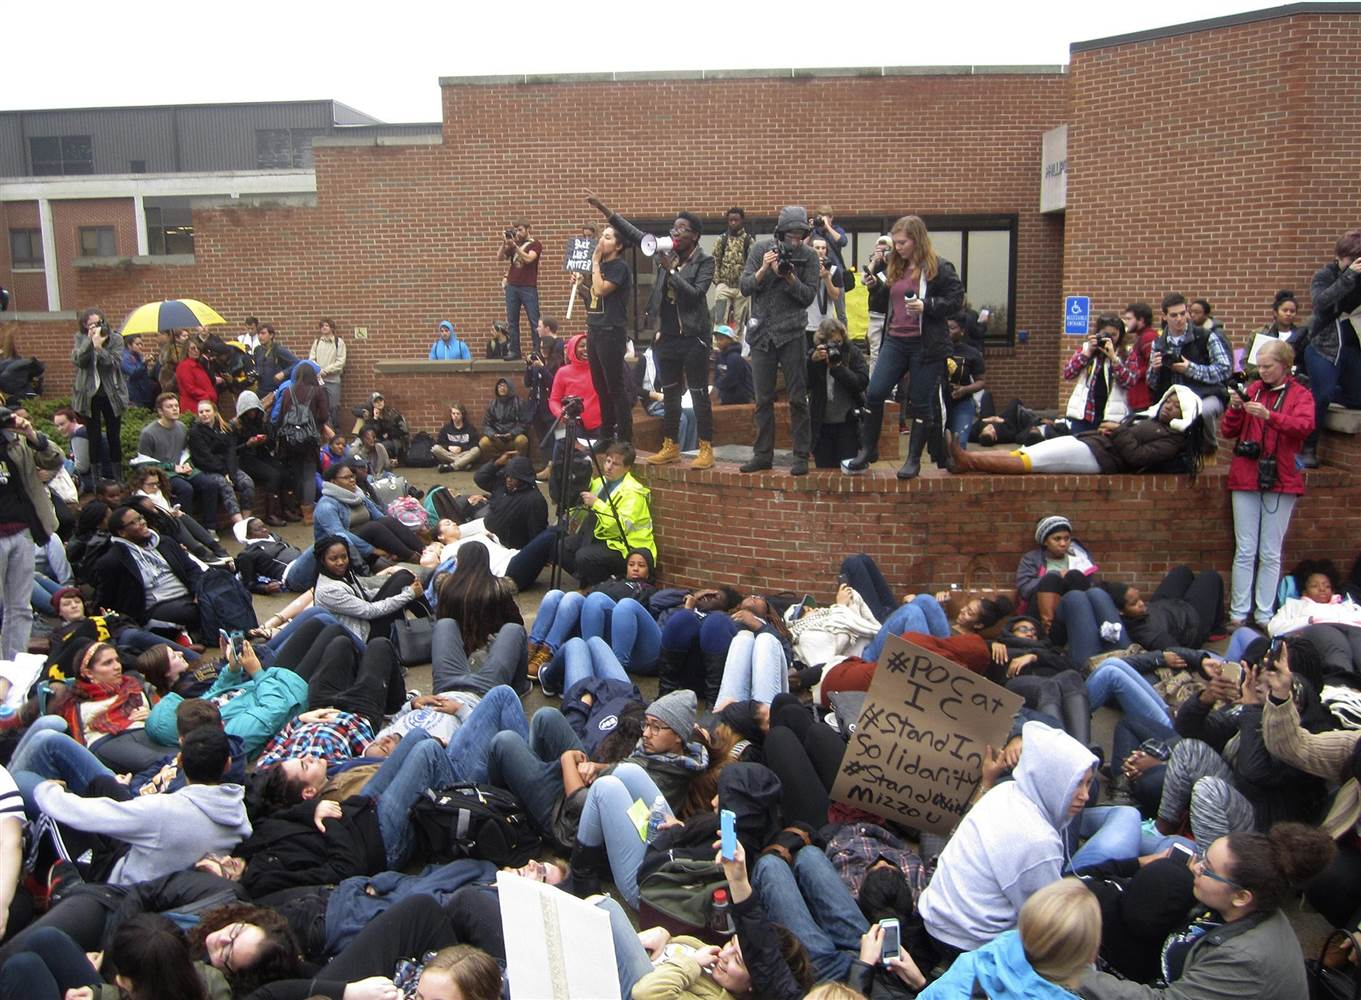 Student Leaders Mobilize 'Day of Action' Demonstrations